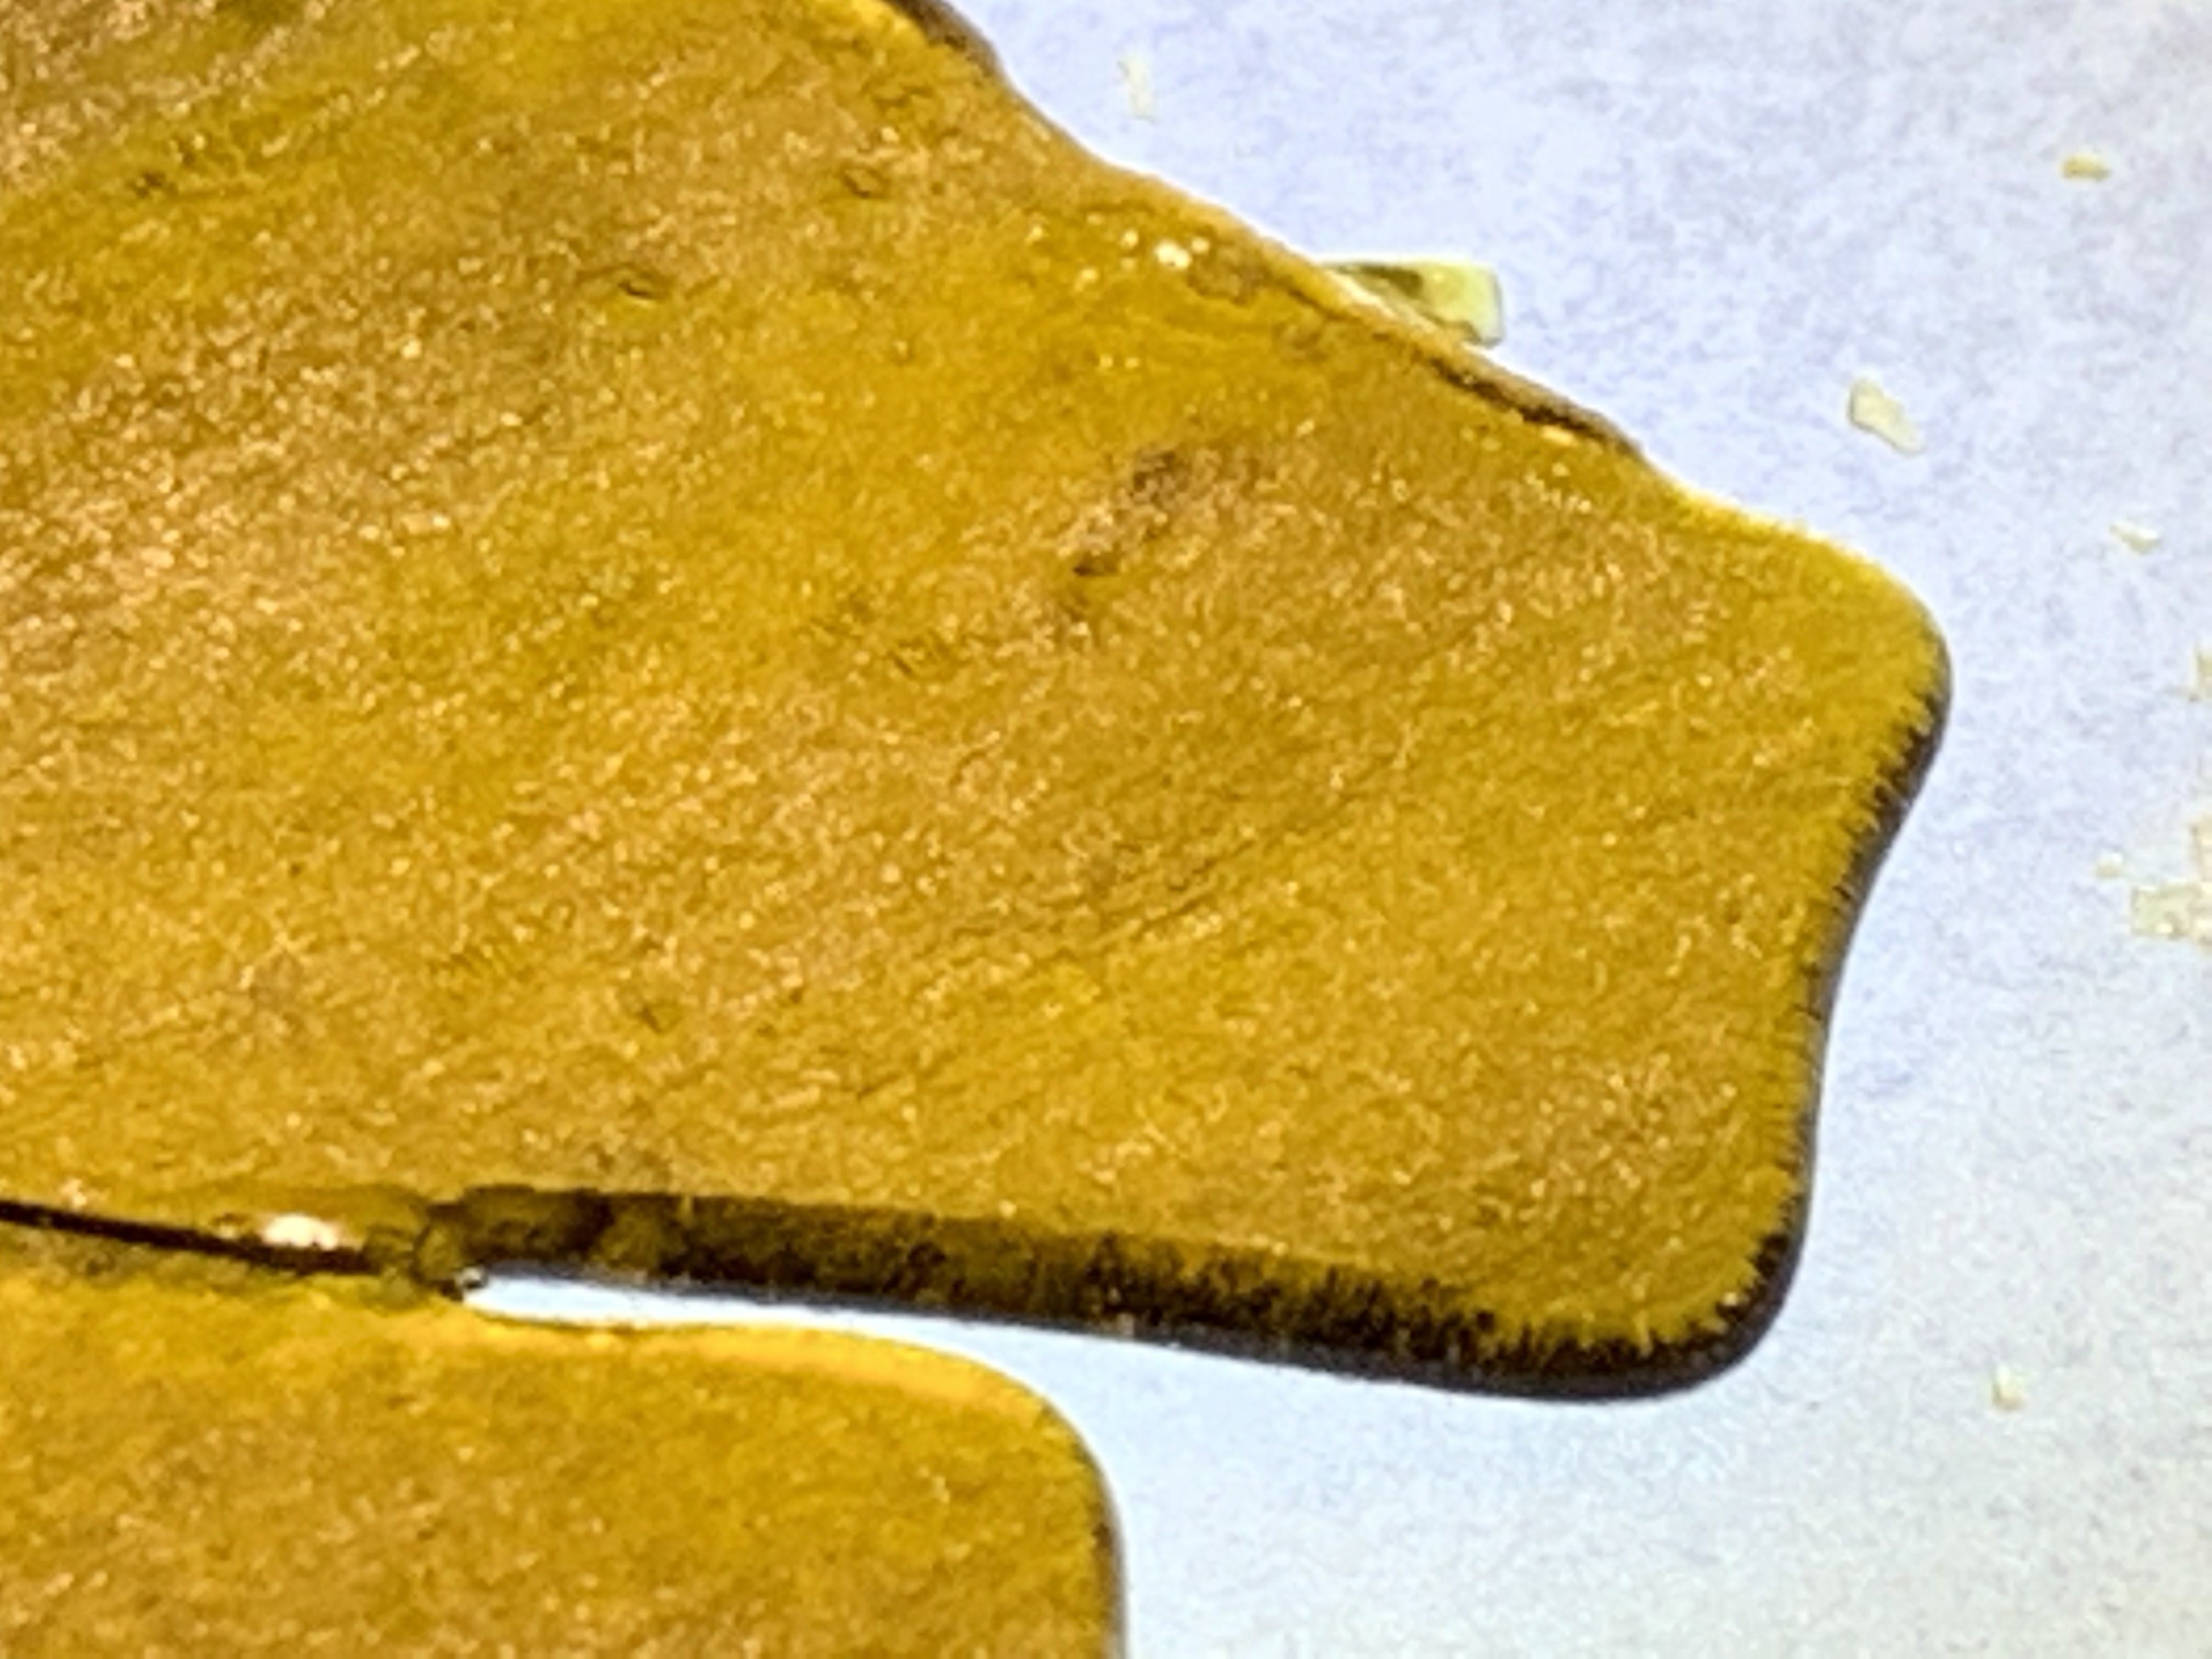 Shatter - Lemon Diesel (Indica Hybrid) * LIMITED SUPPLY CALL FOR AVAILABILITY